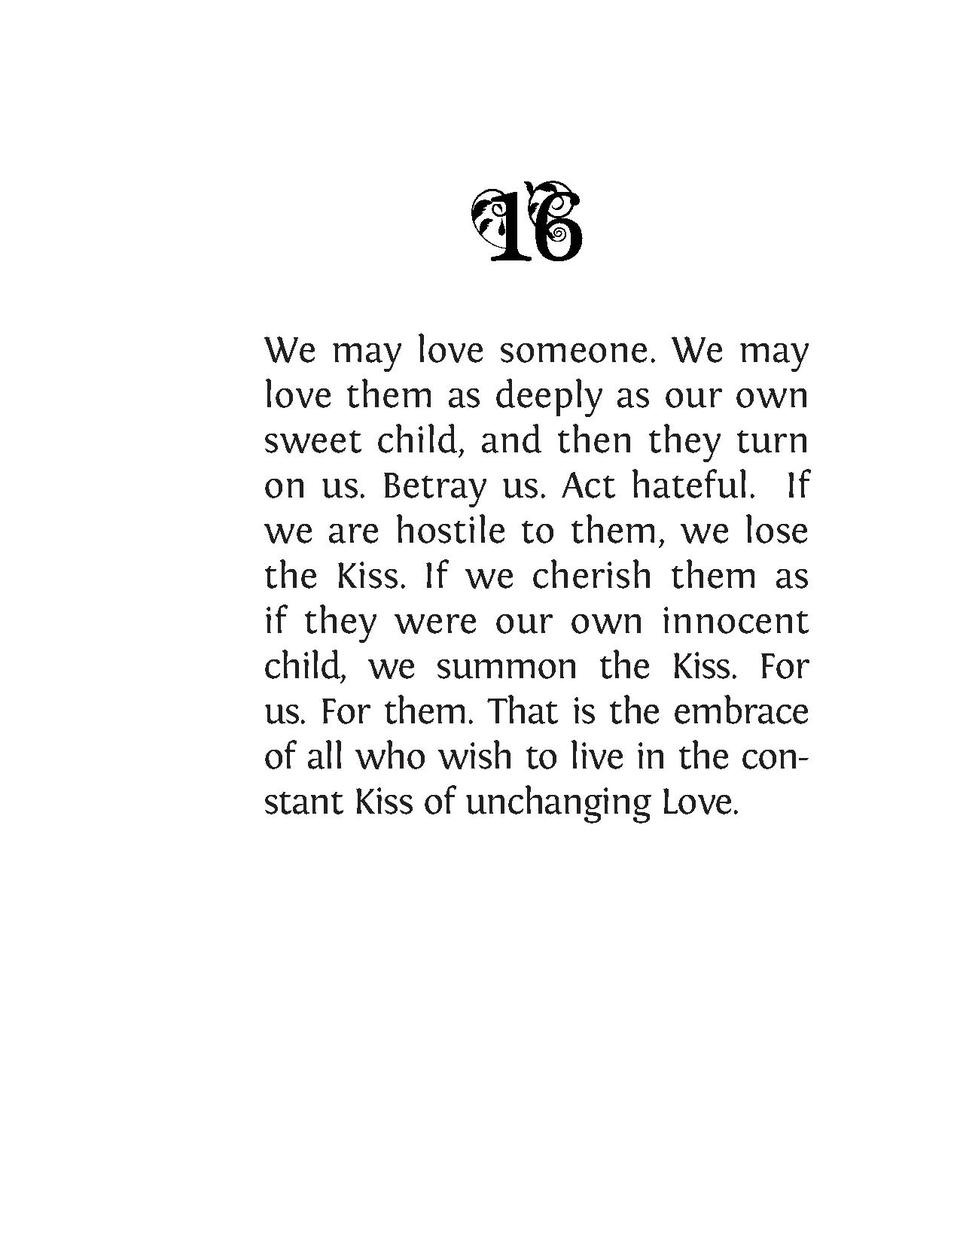 We may love someone. We may love them as deeply as our own sweet child, and then they turn on us. Betray us. Act hateful. ...